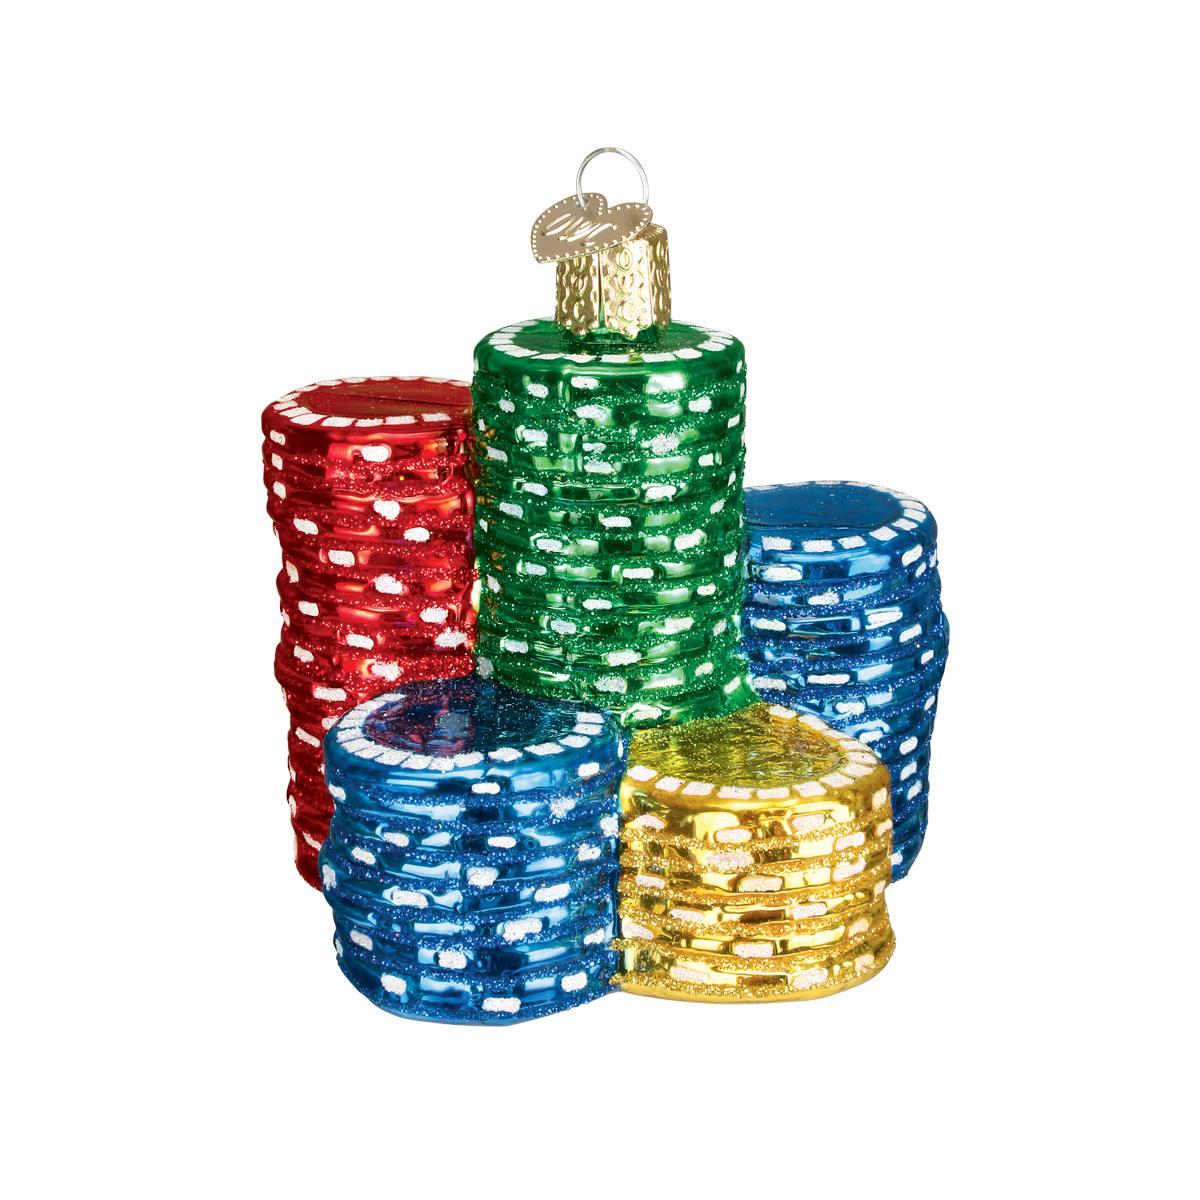 Casino ornaments prevent or stop gambling addiction